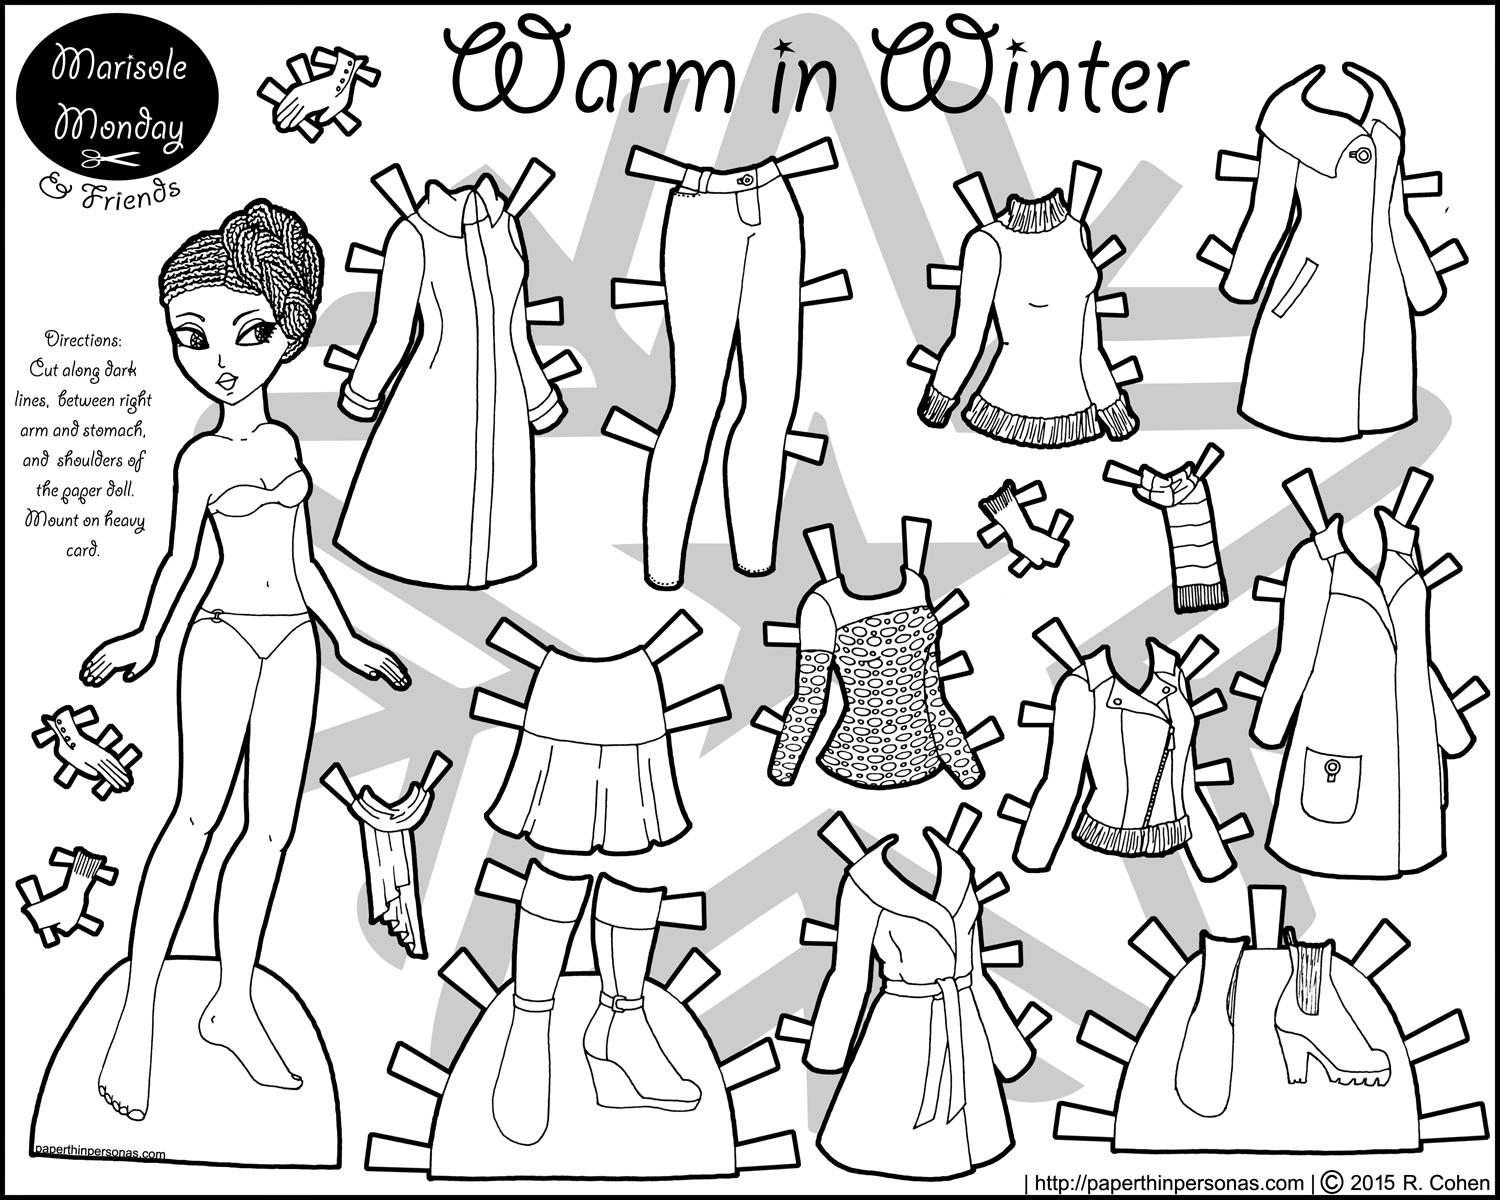 Uncategorized Paper Doll Coloring Page warm in winter african american paper doll coloring page bw